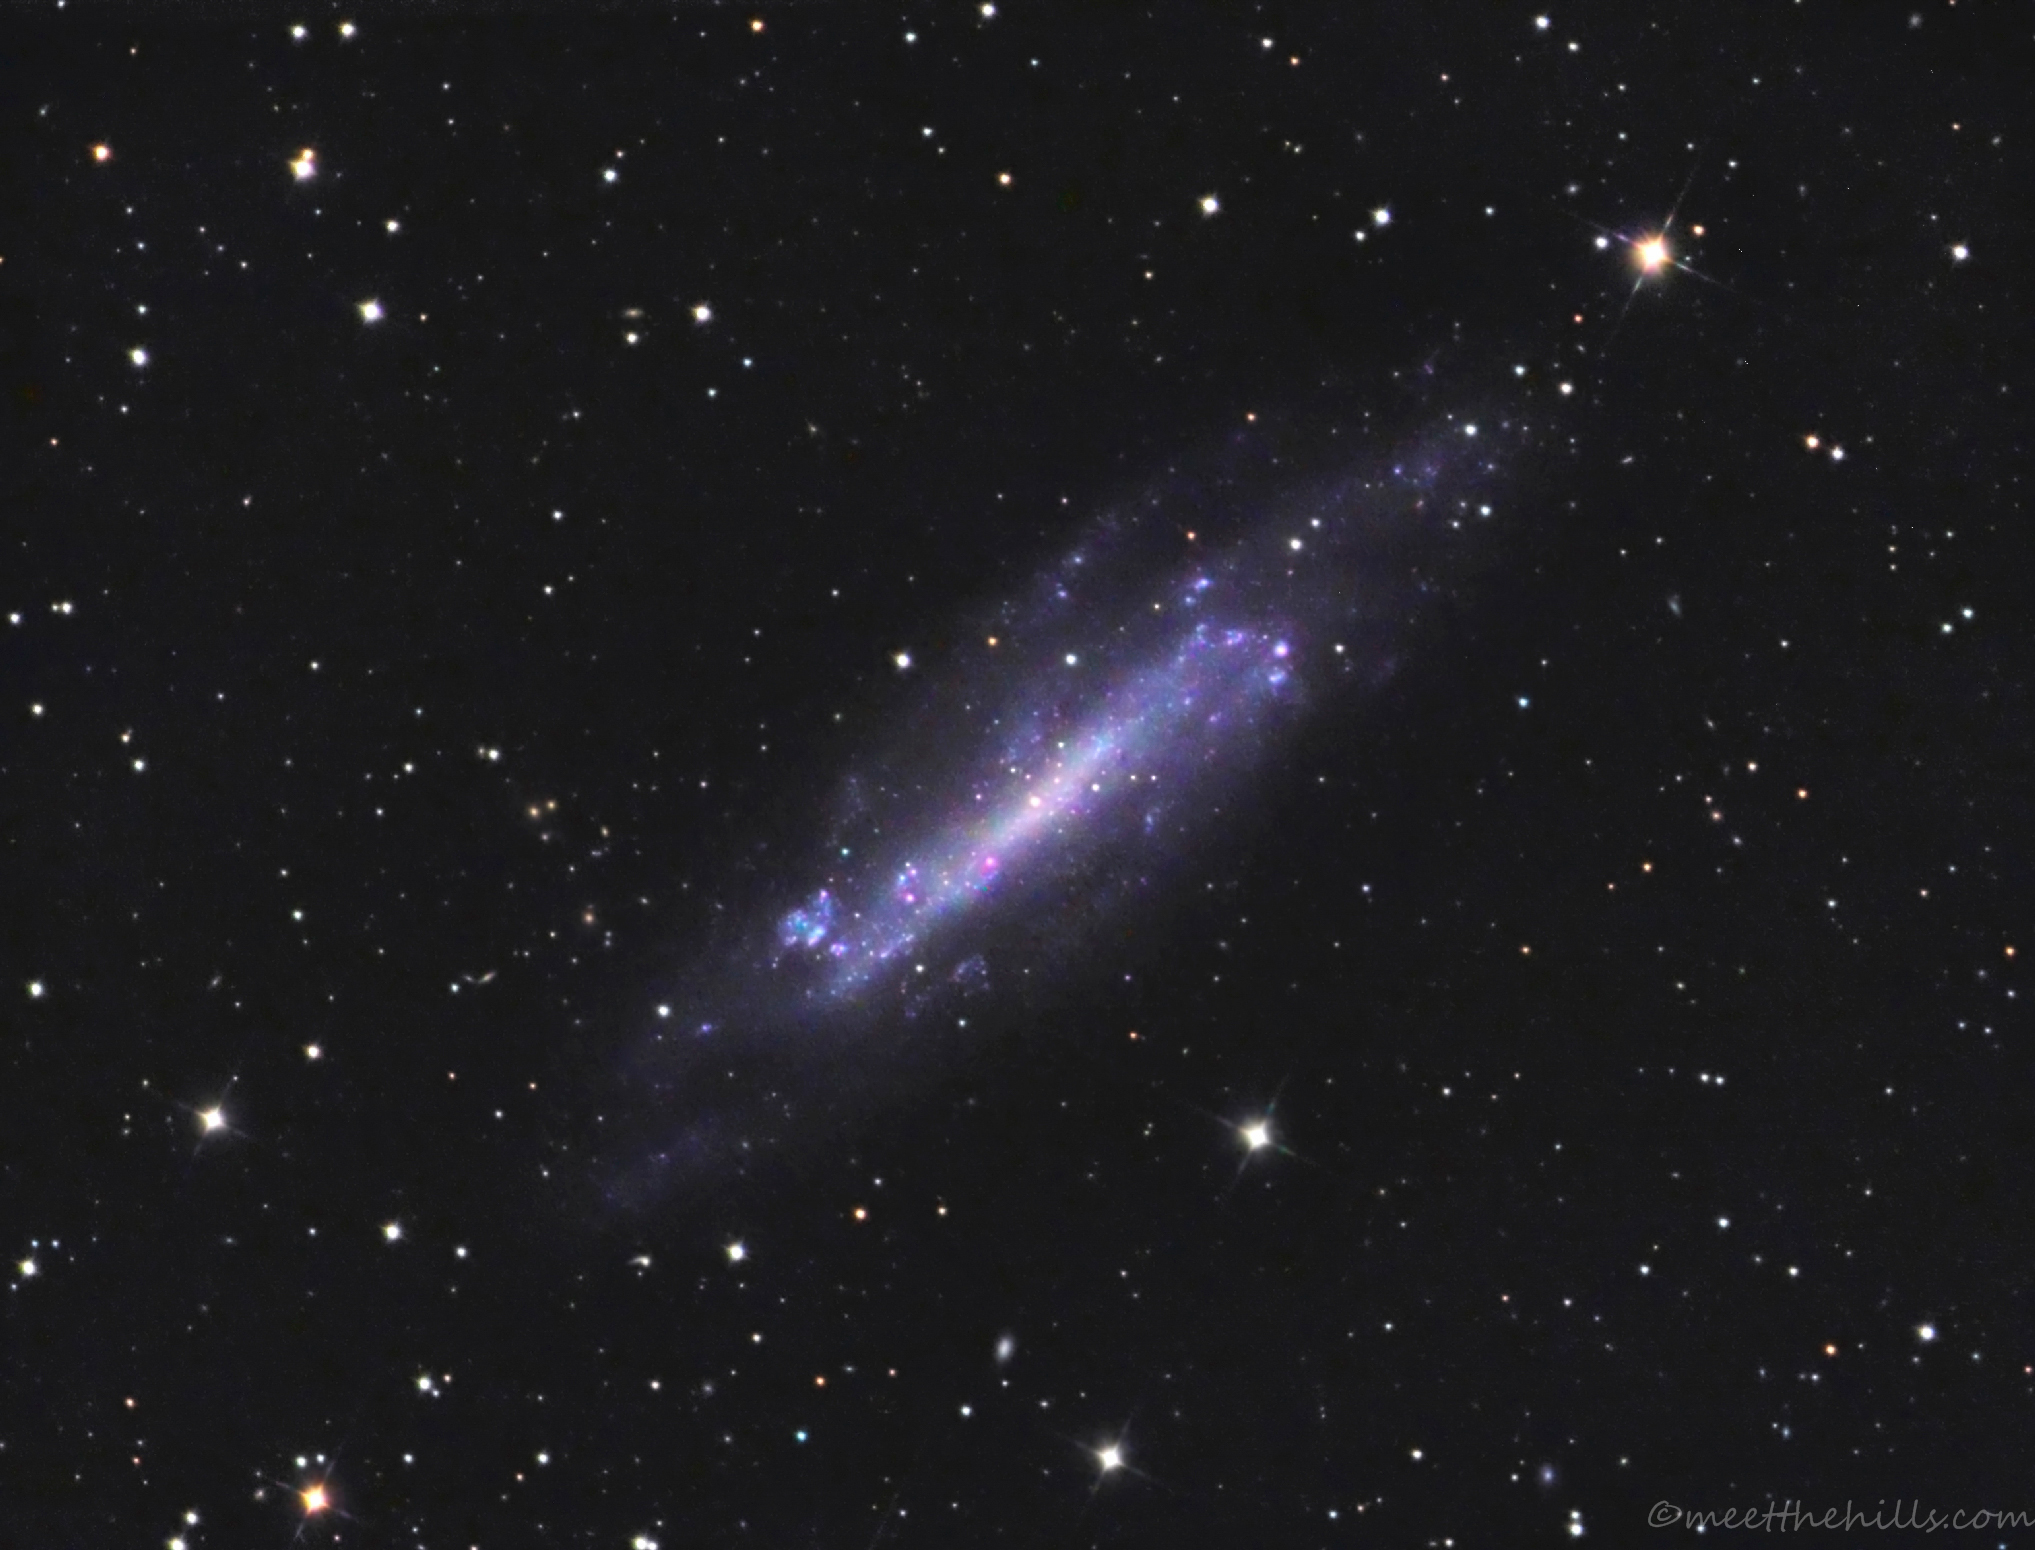 NGC4236 - Spiral Galaxy in Draco